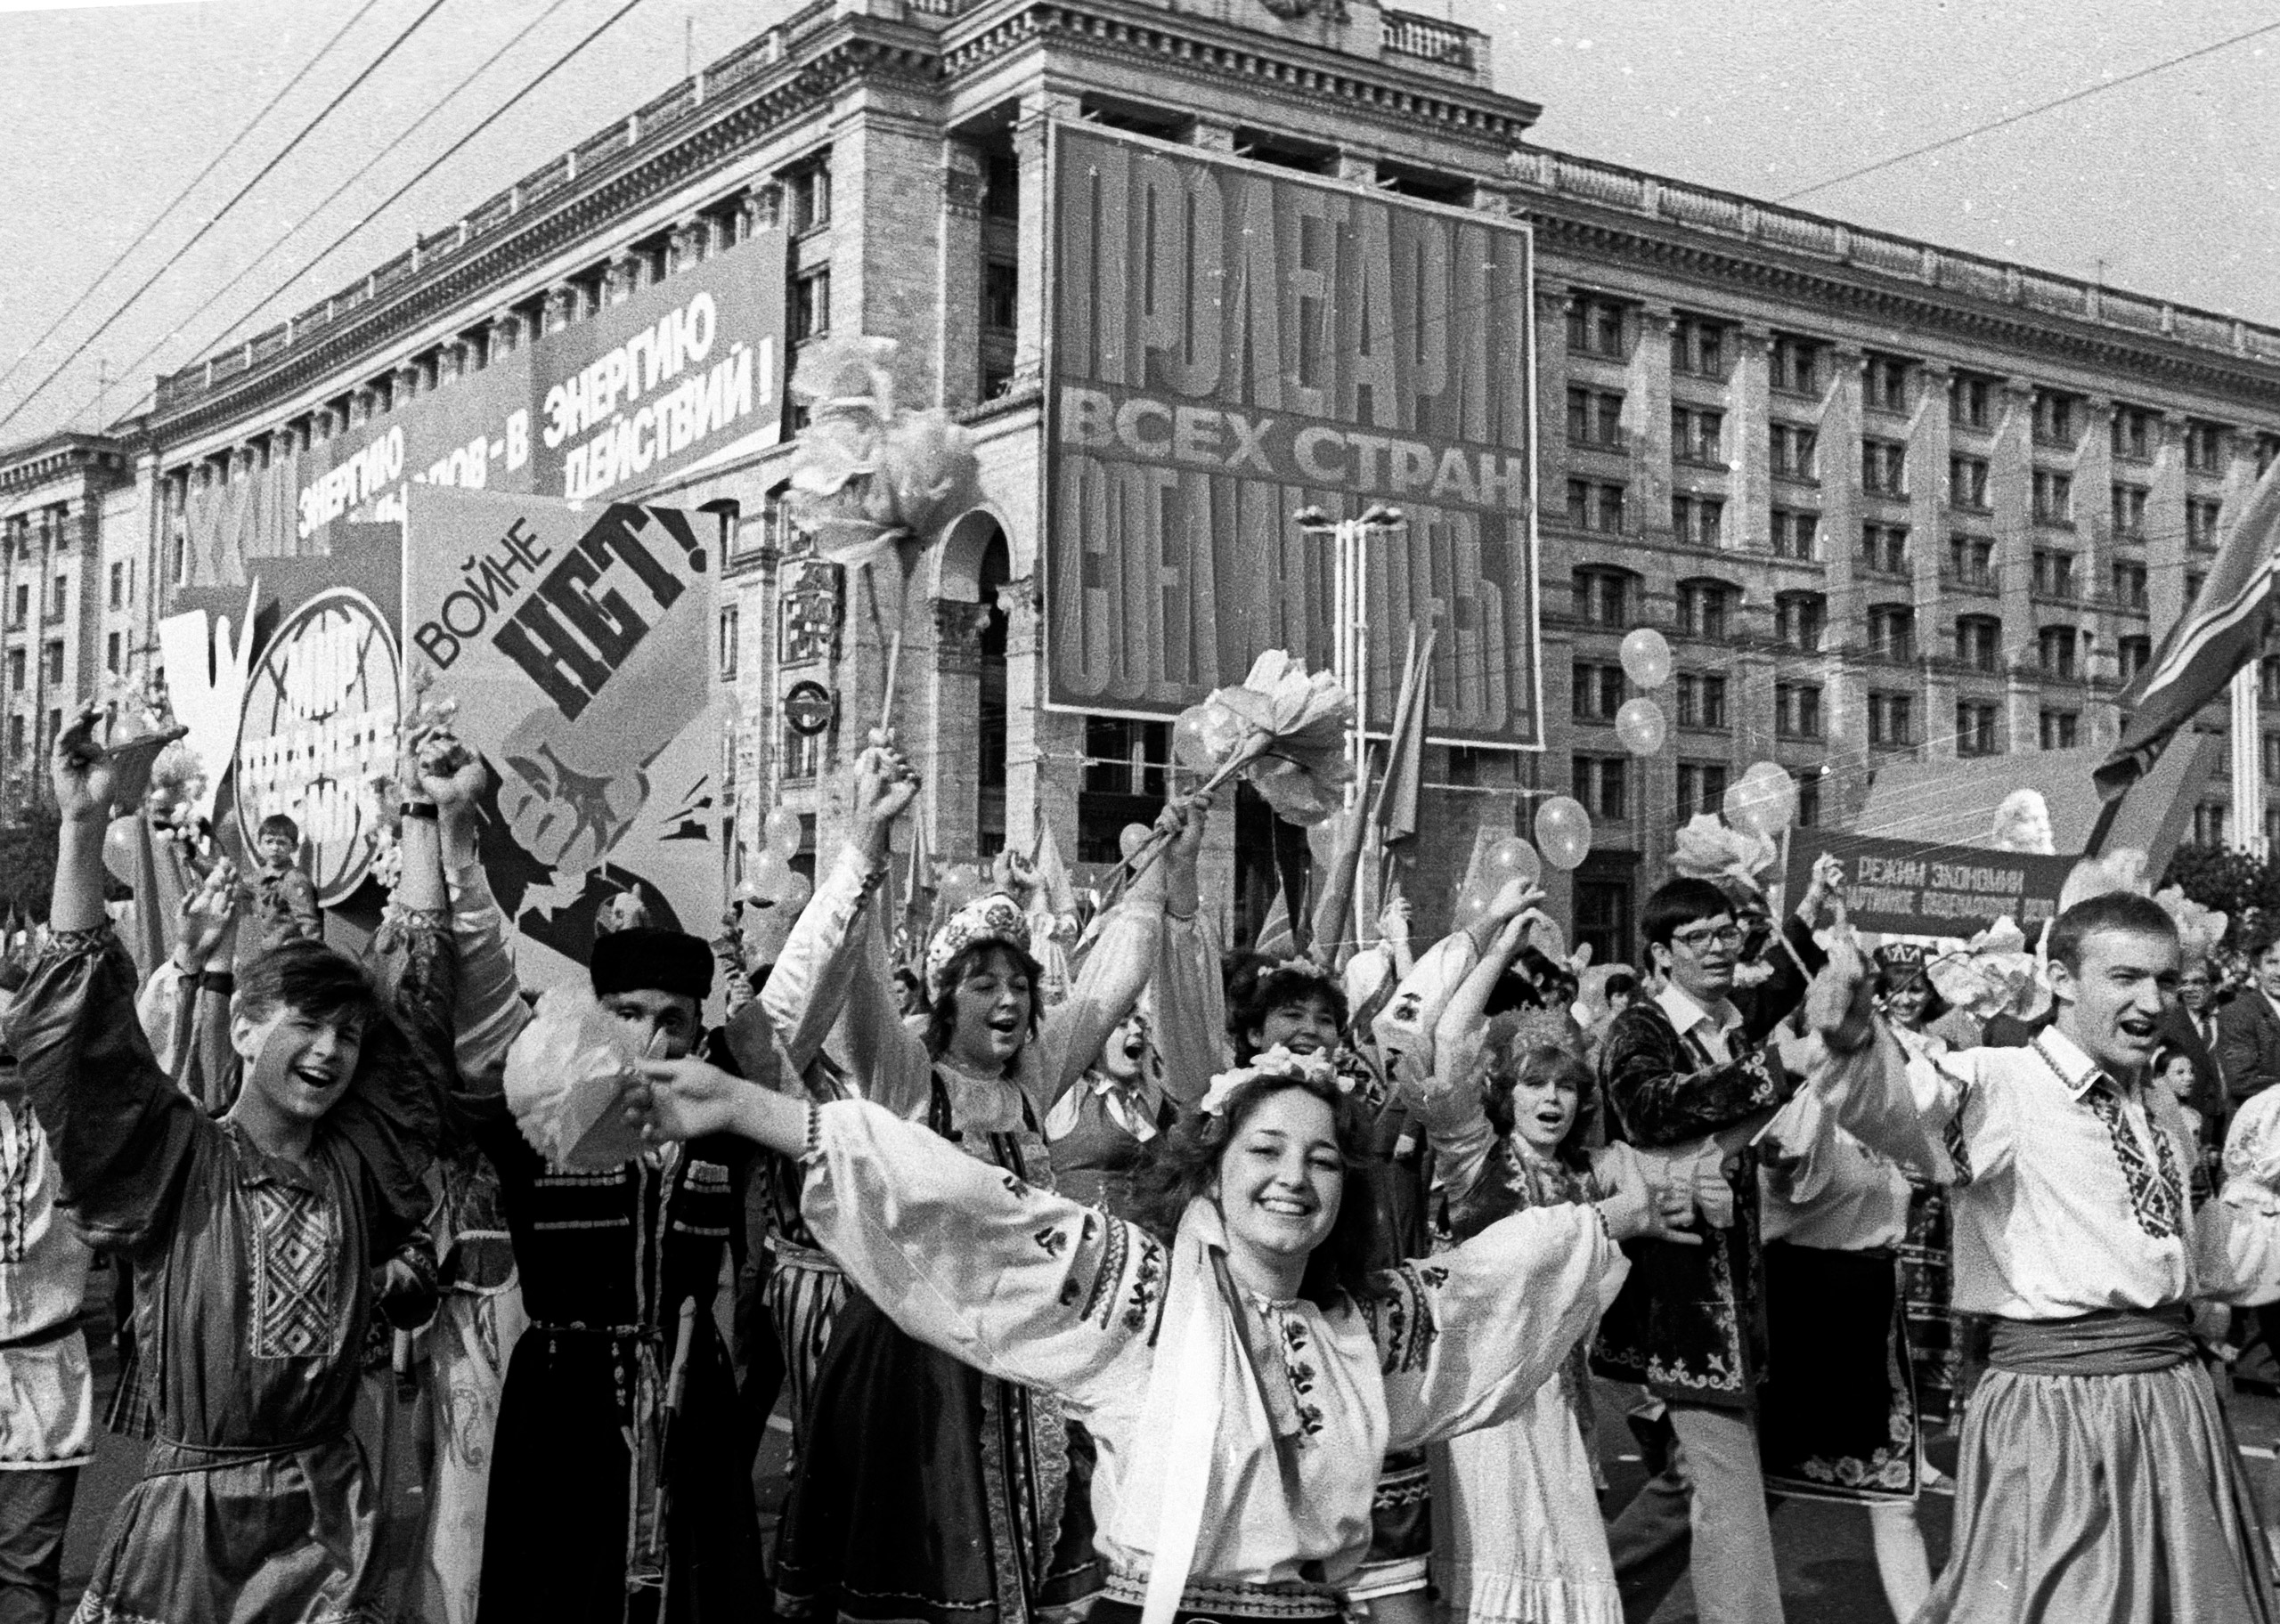 A few days after the deadly explosion on the 4th unit in Chernobyl nuclear power plant, people rallied to celebrate the International Workers' Day in Kiev, Ukraine, on May 1, 1986. Nobody cancelled the May Day parade in Kiev when thousands of people walked in columns along the streets, with songs, flowers and Soviet leaders portraits, covered with invisible clouds of fatal radiation.